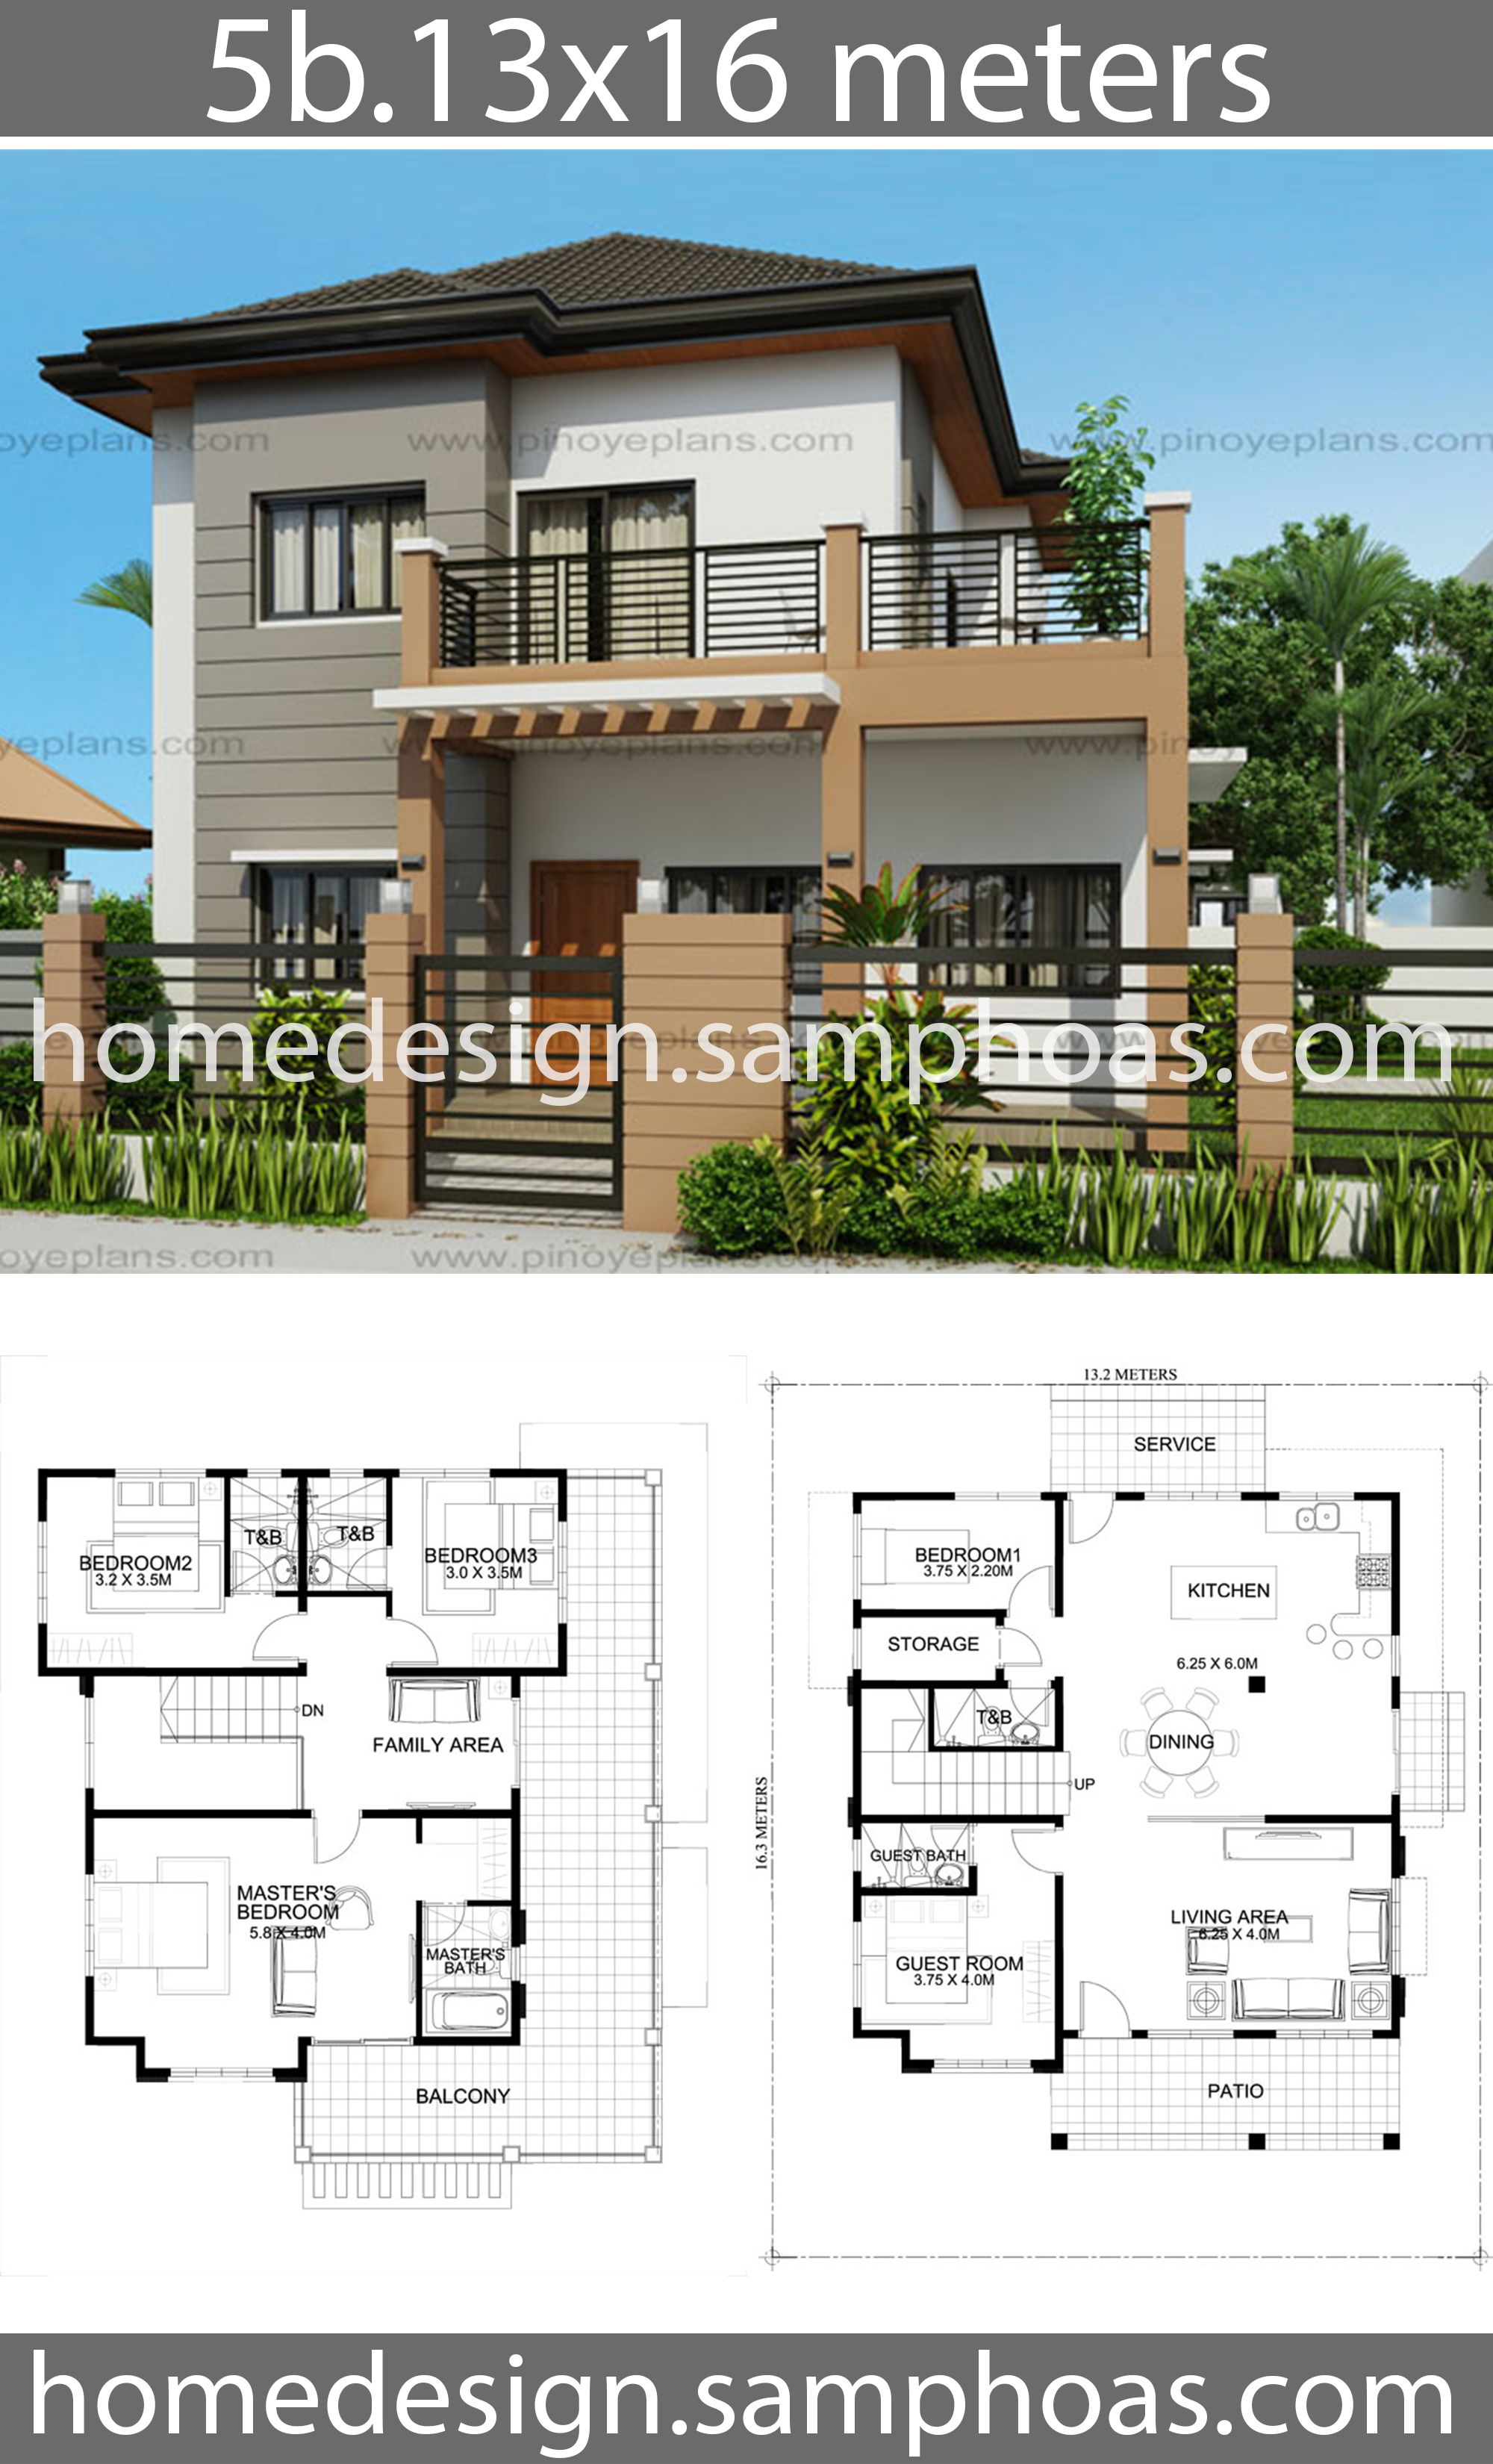 House Design Plans 13x16m With 5 Bedroom House Idea Modern House Plans House Plans Australia House Blueprints